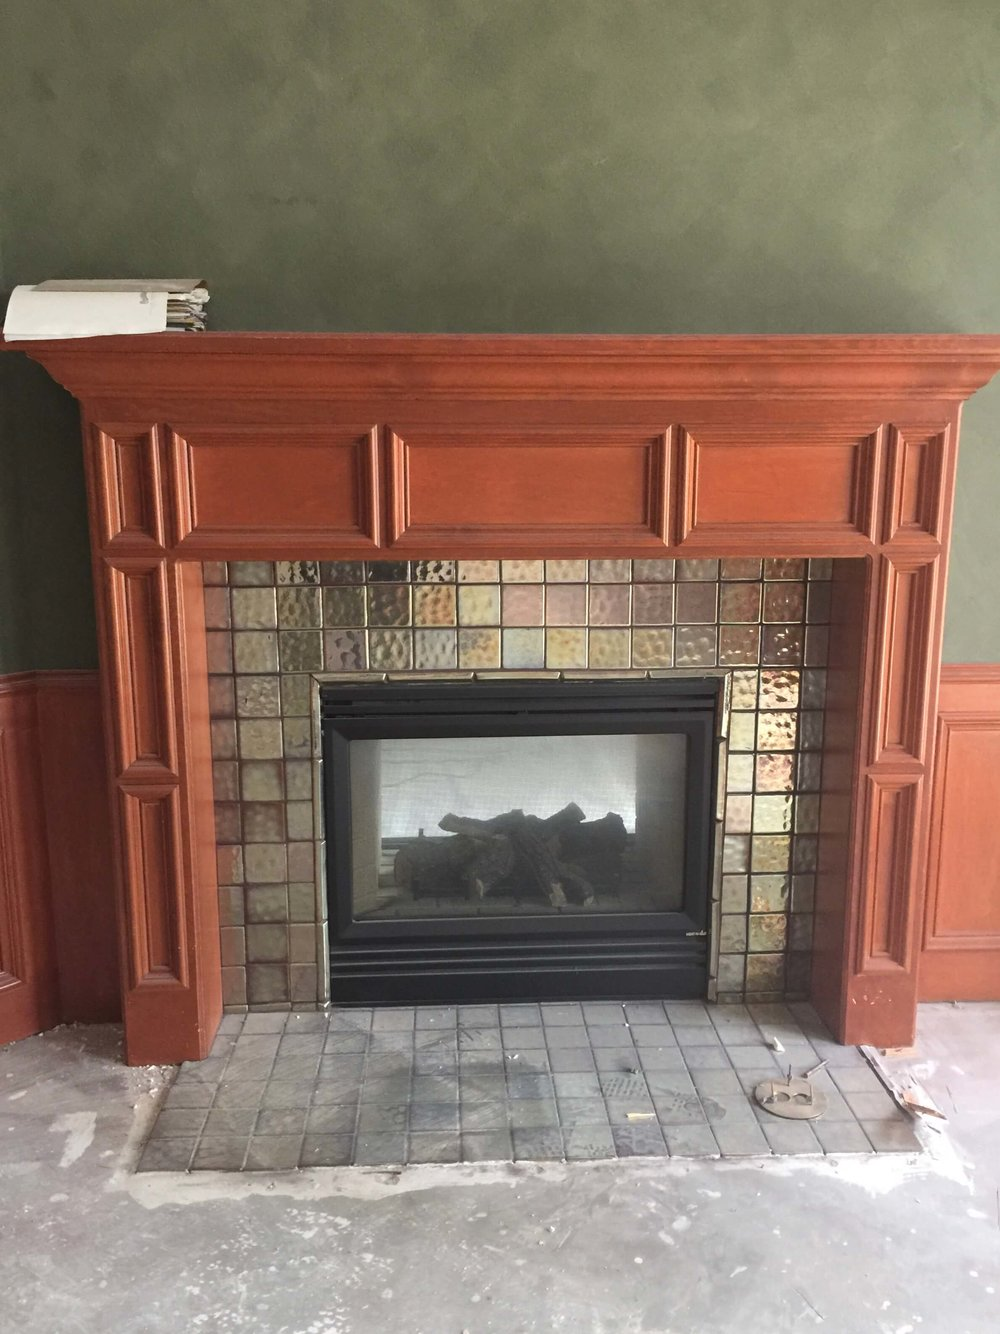 BEFORE - Home office fireplace and paneling with orange tone wood